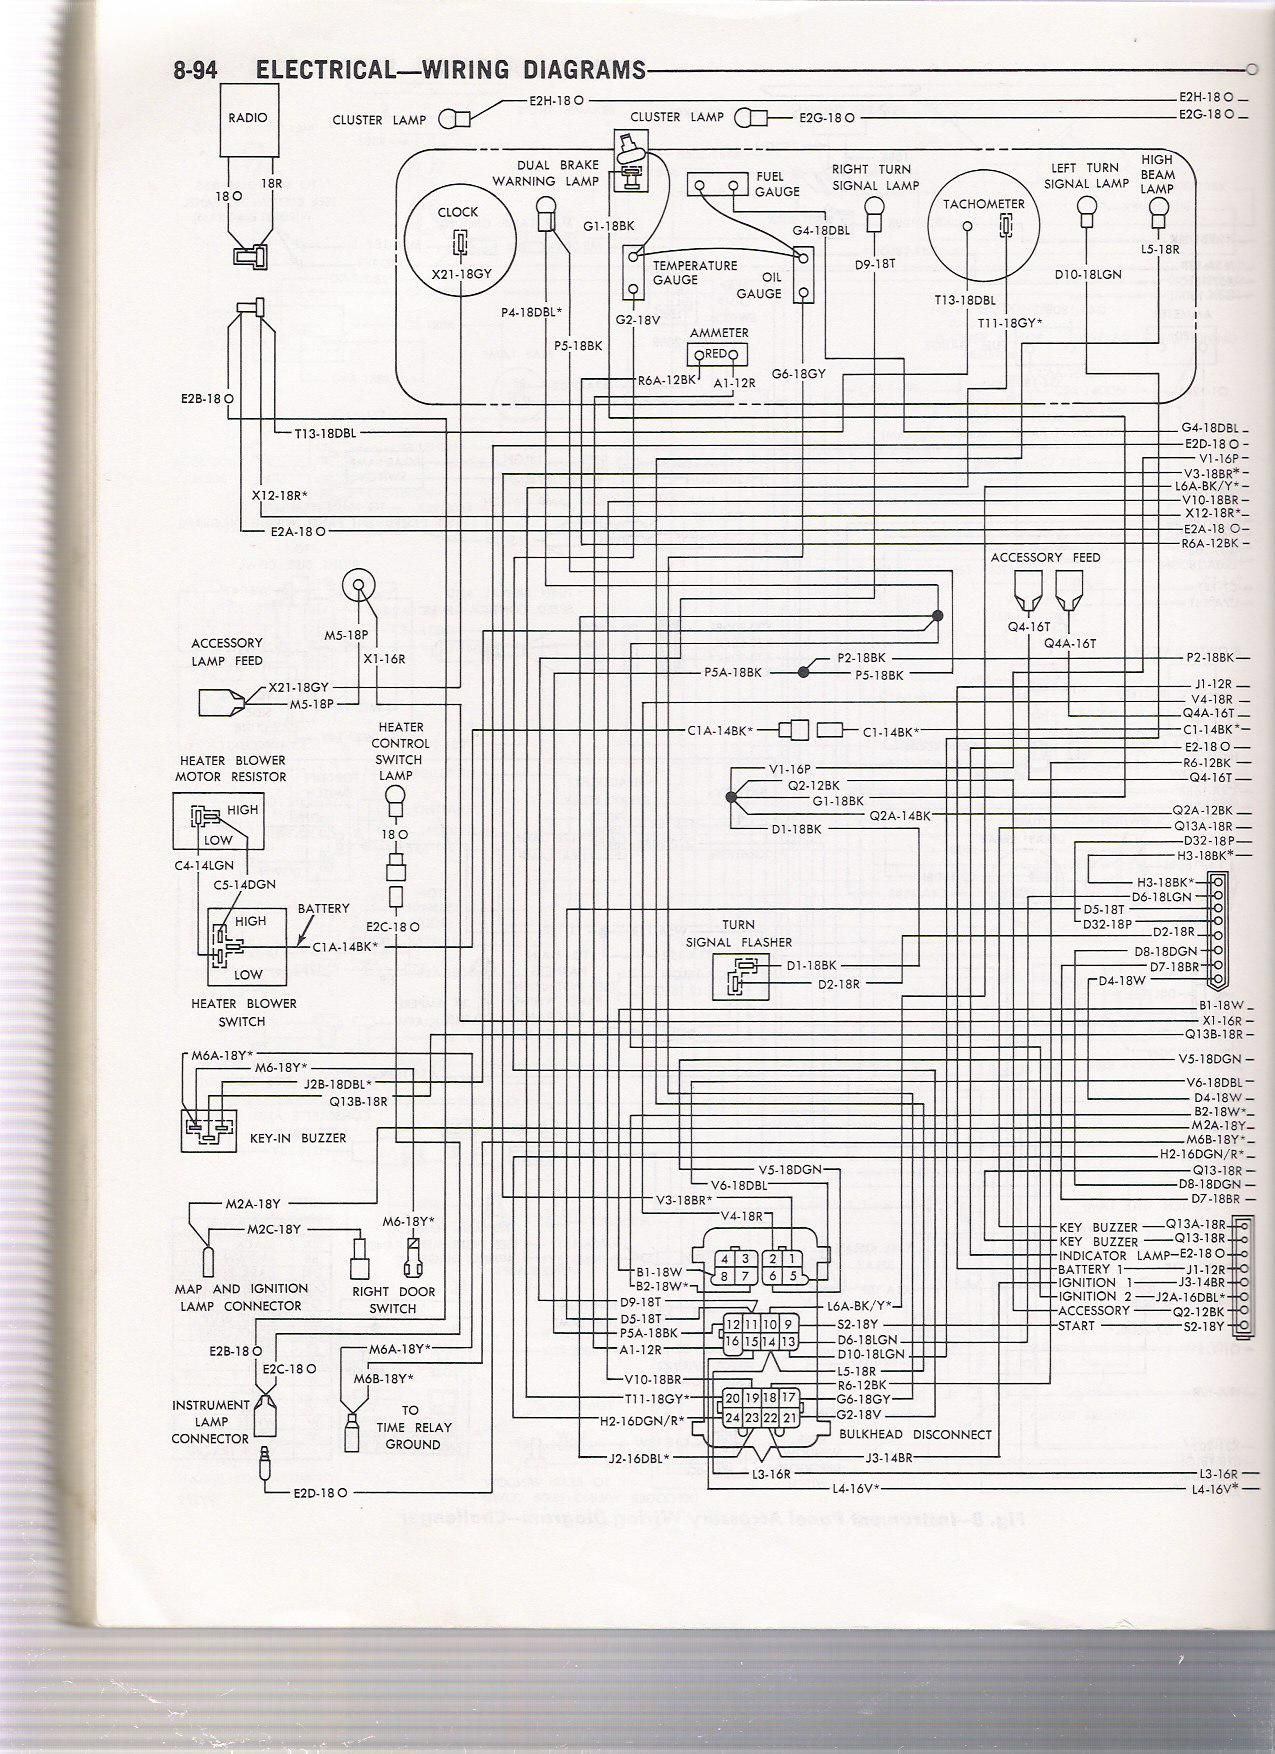 3682004 1970ChallRallye_schematic3 wiring for '70 e body rallye dash? best of moparts tech mopar a body wiring diagram at webbmarketing.co